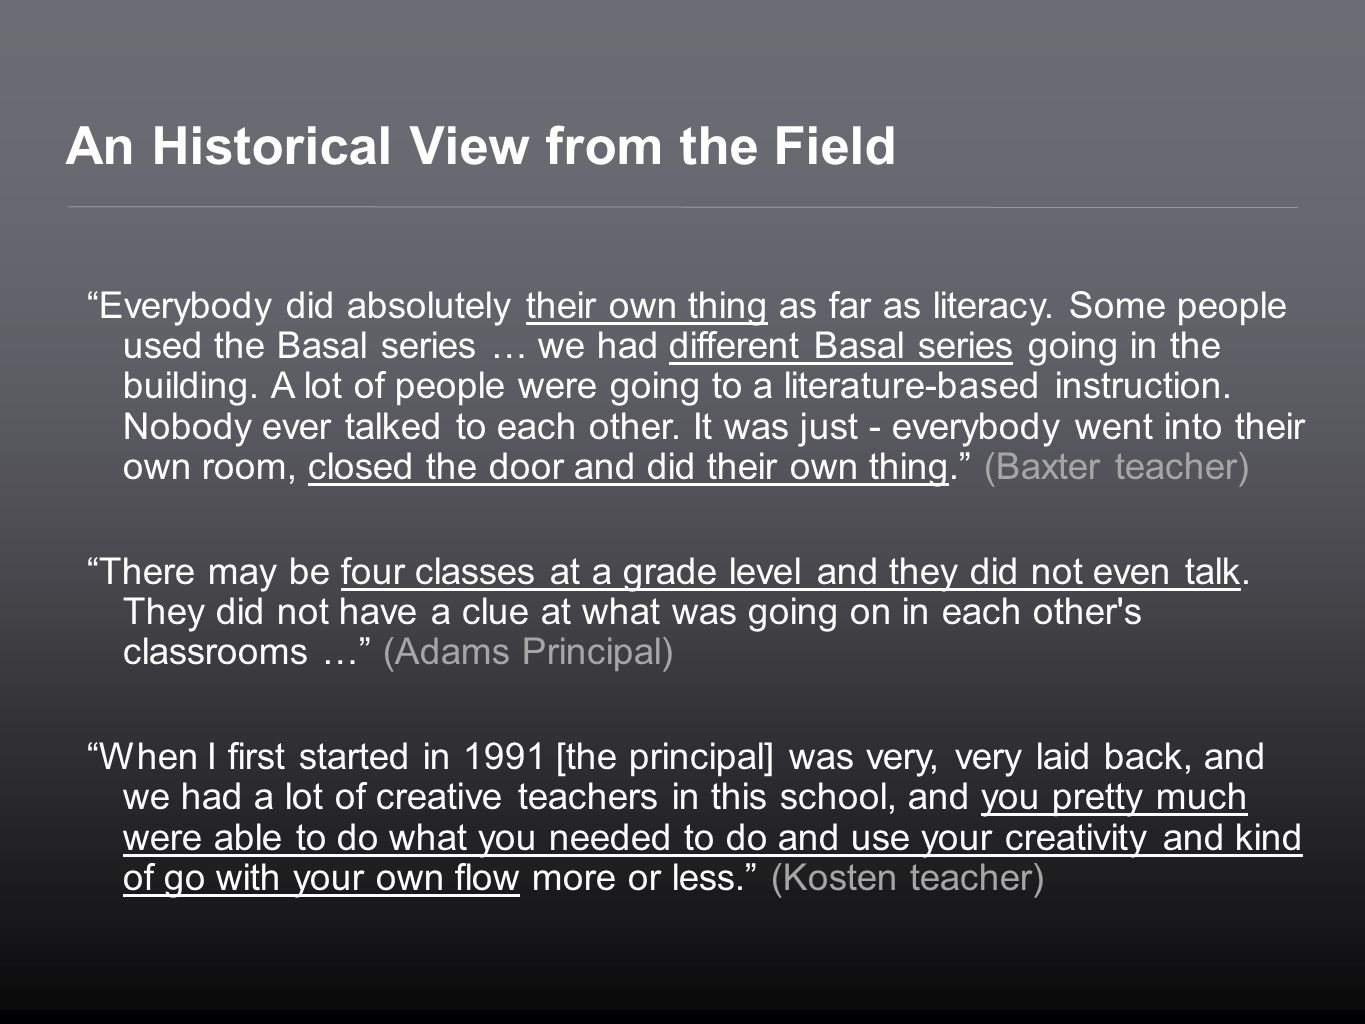 An Historical View from the Field